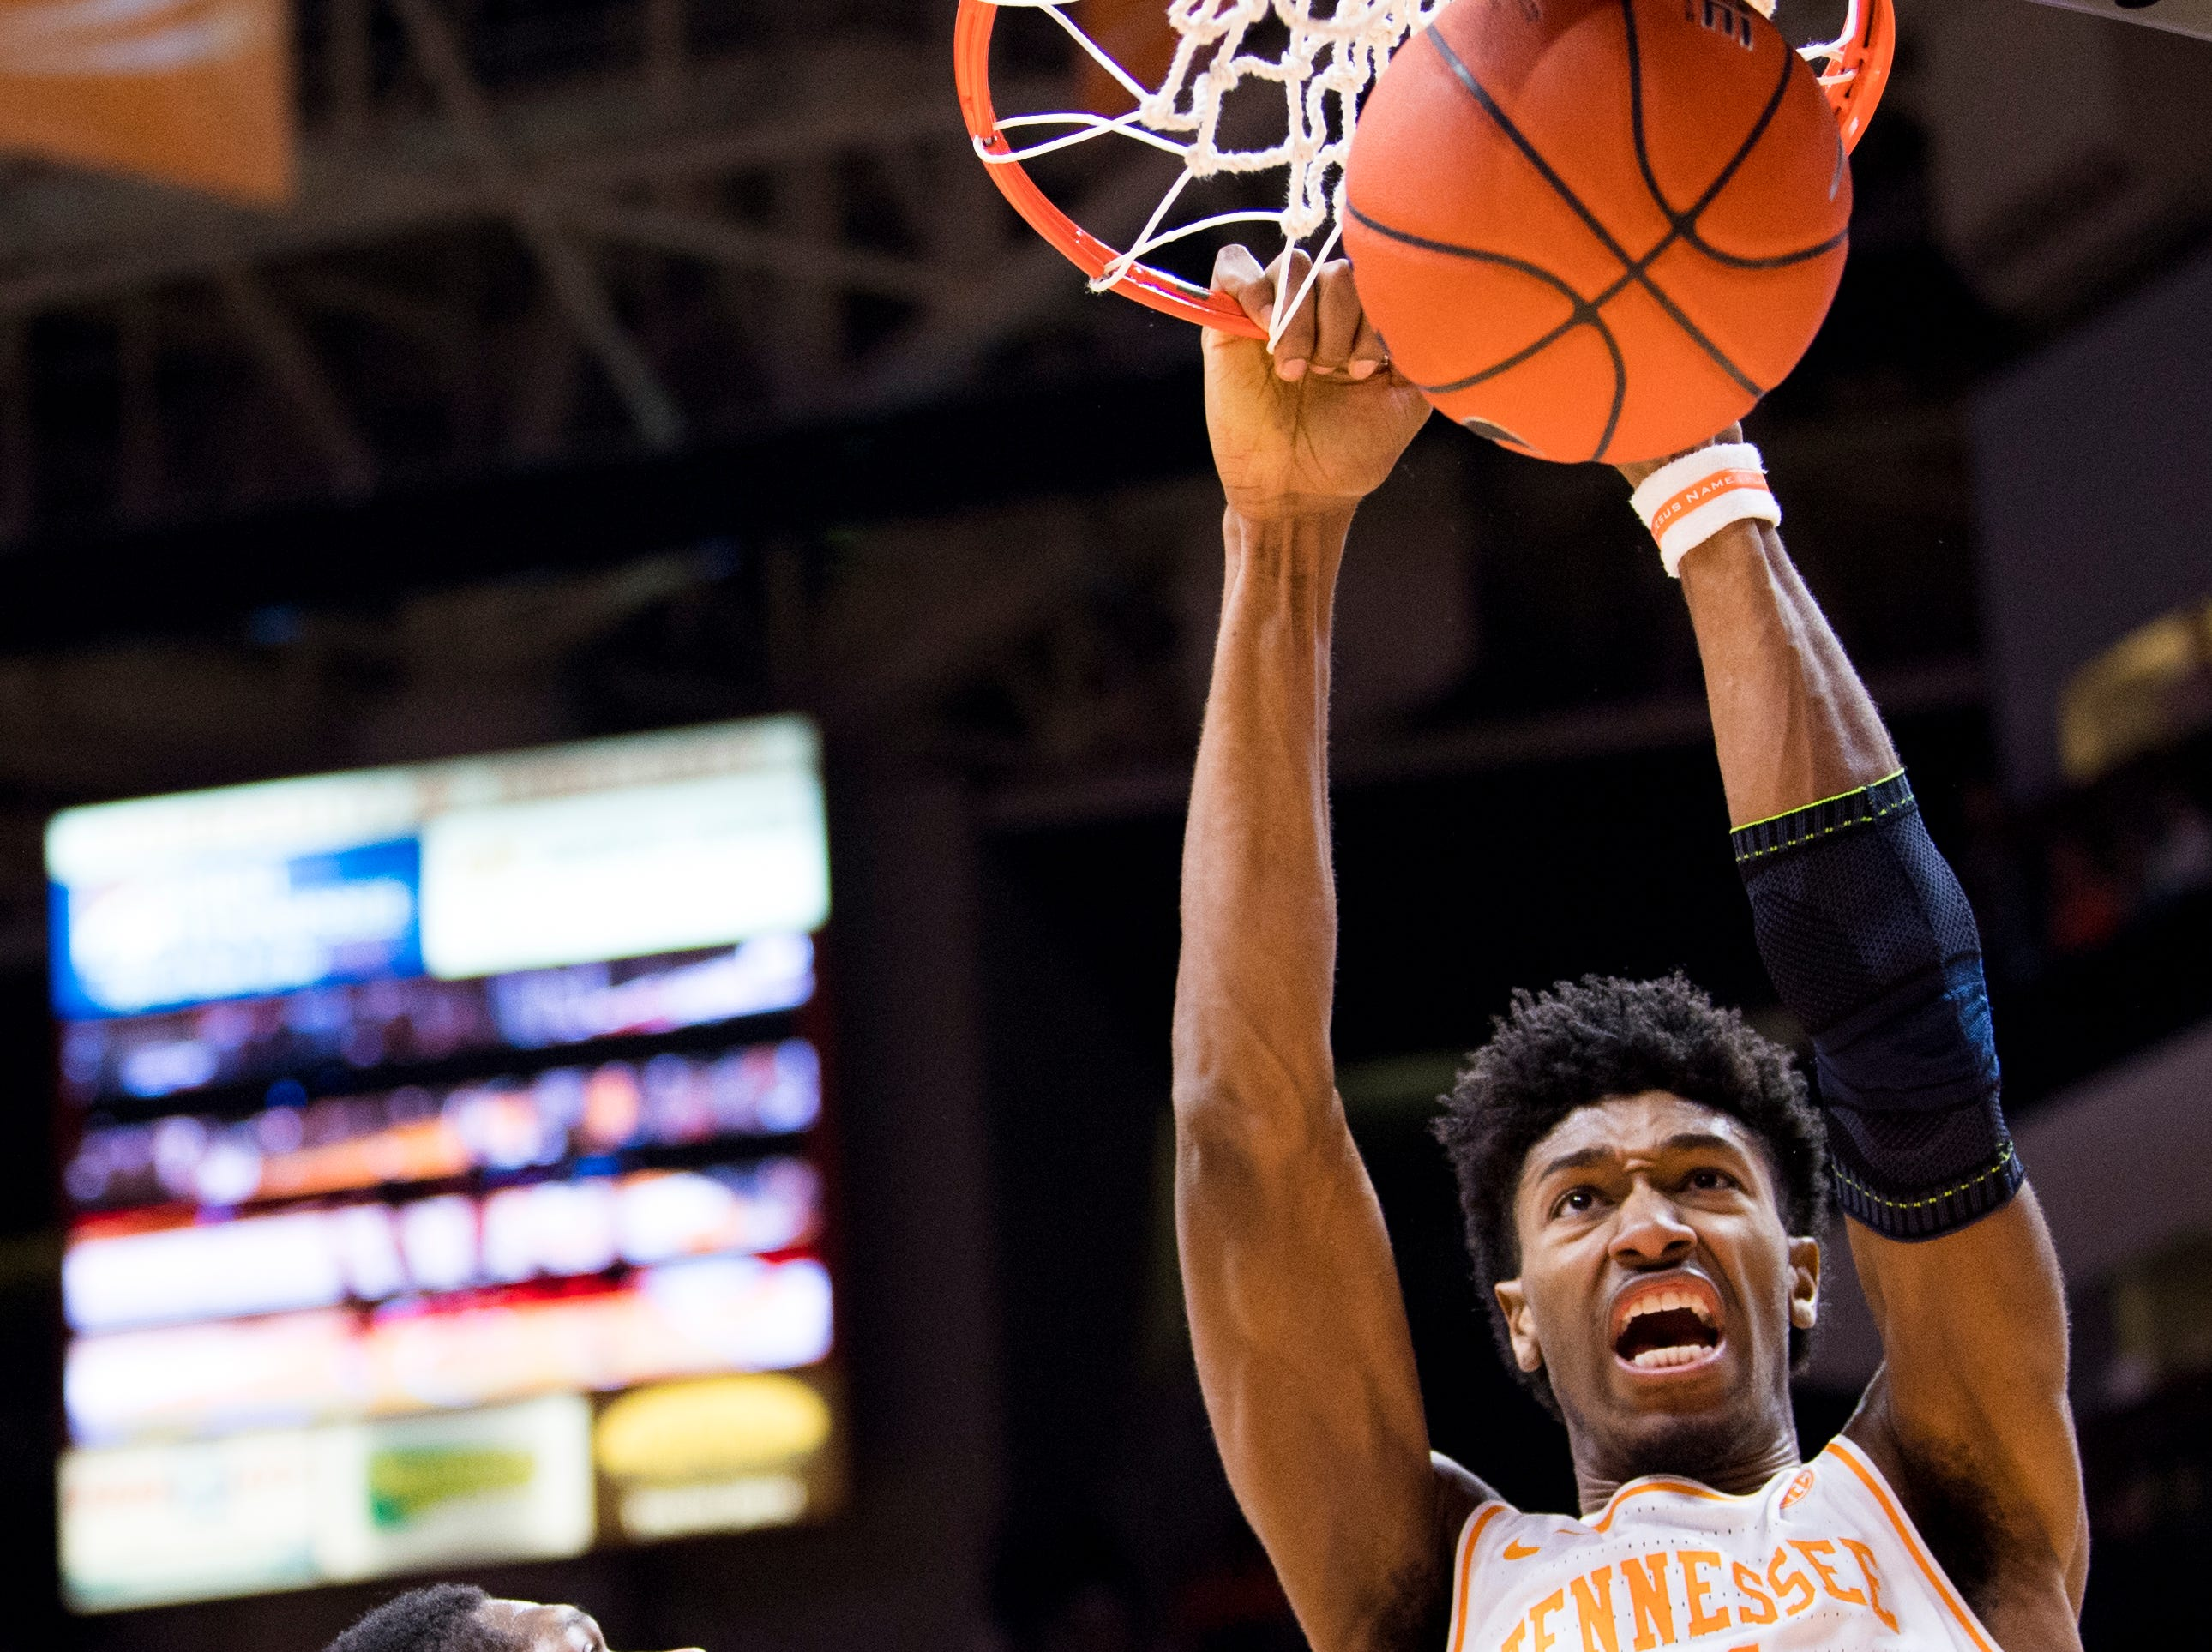 Tennessee forward Kyle Alexander (11) dunks during Tennessee's home SEC game against South Carolina at Thompson-Boling Arena in Knoxville on Wednesday, February 13, 2019.